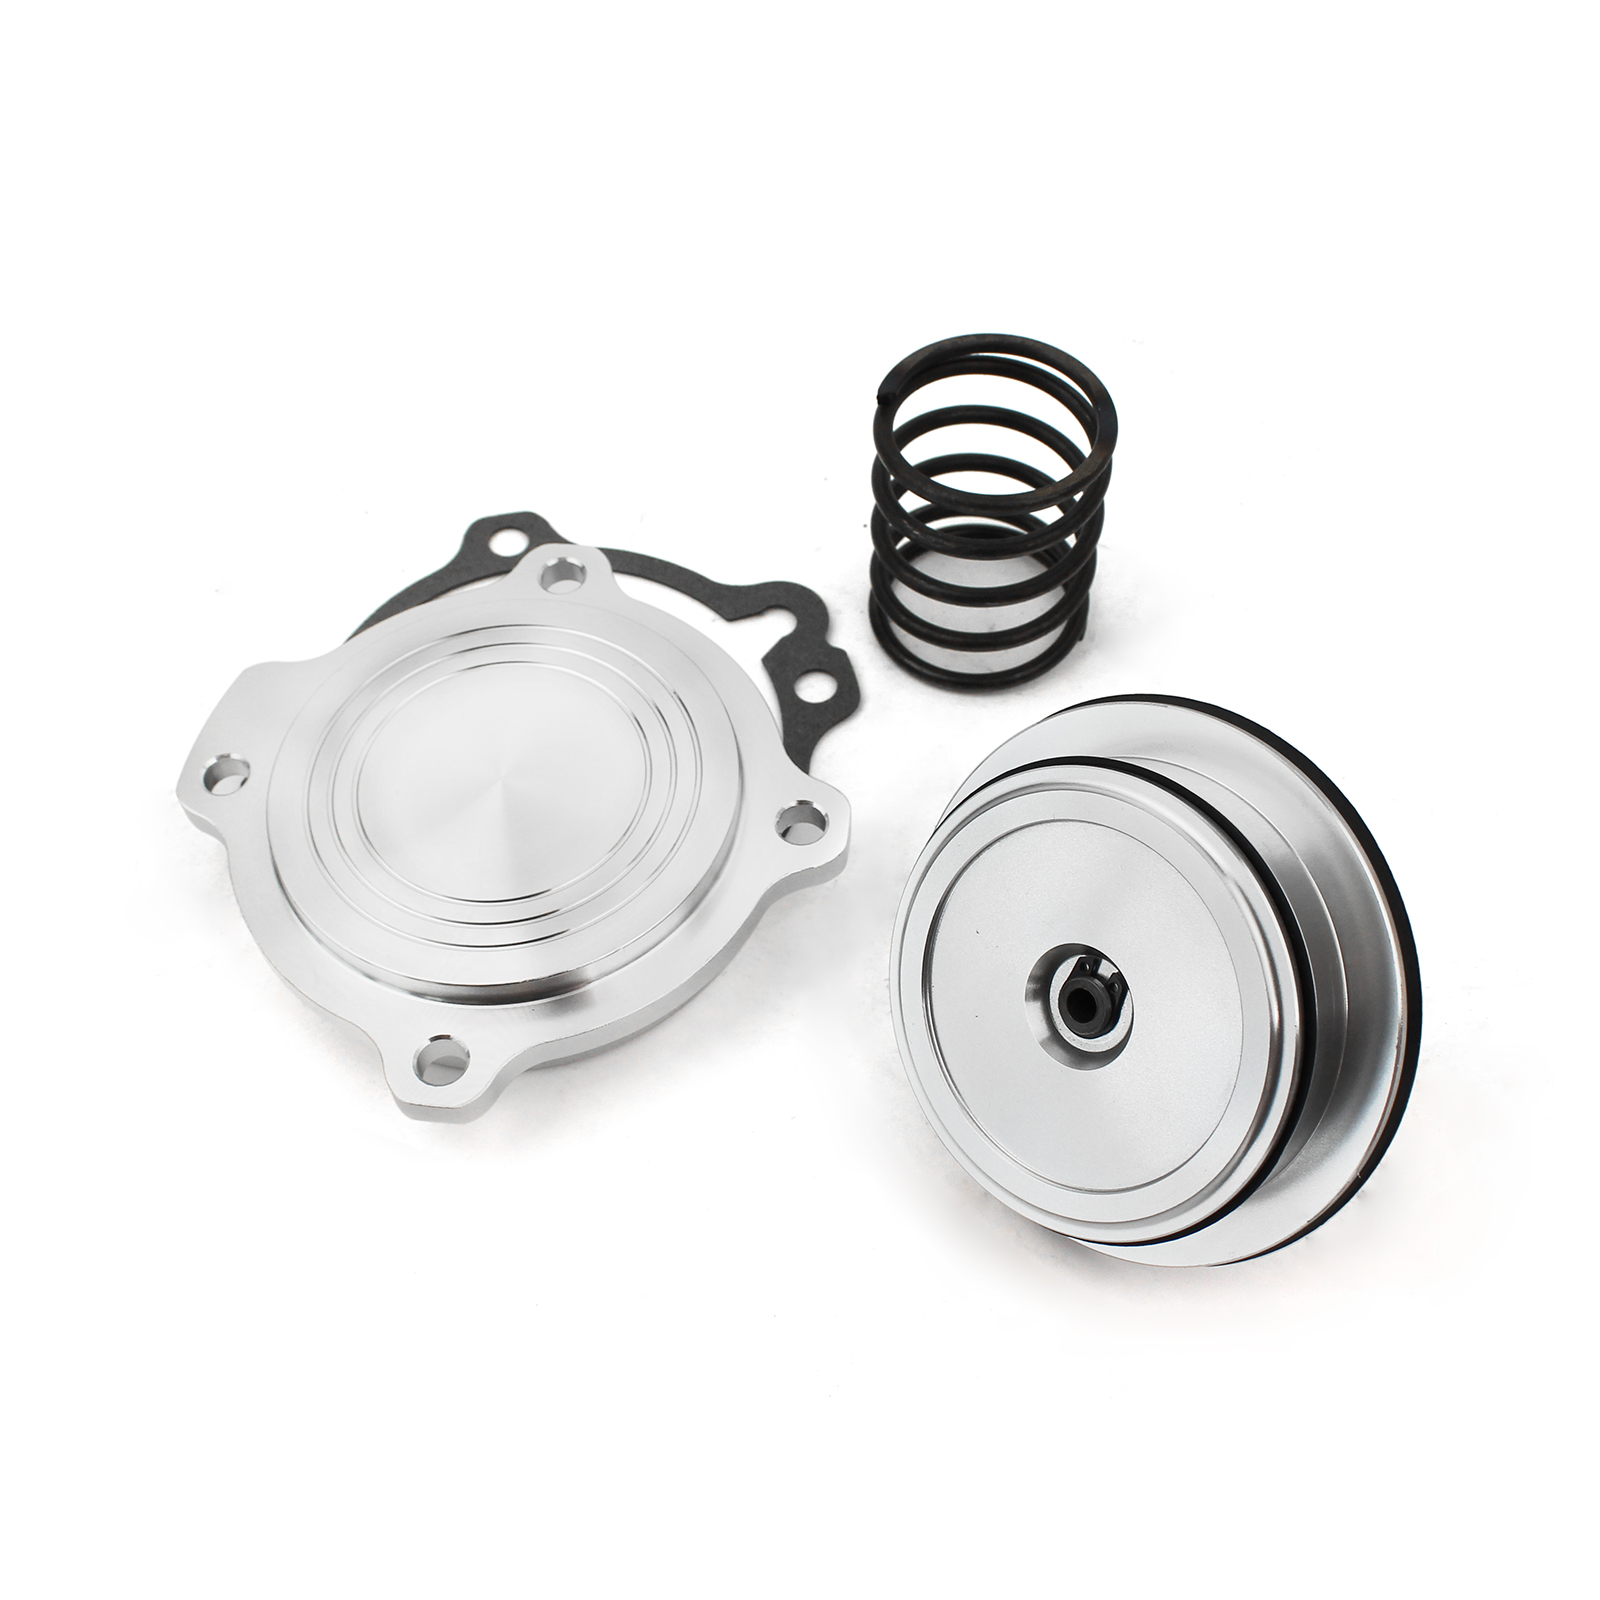 Ford C4 C5 Automatic Transmission Billet C Ratio Servo Piston Kit [Silver]